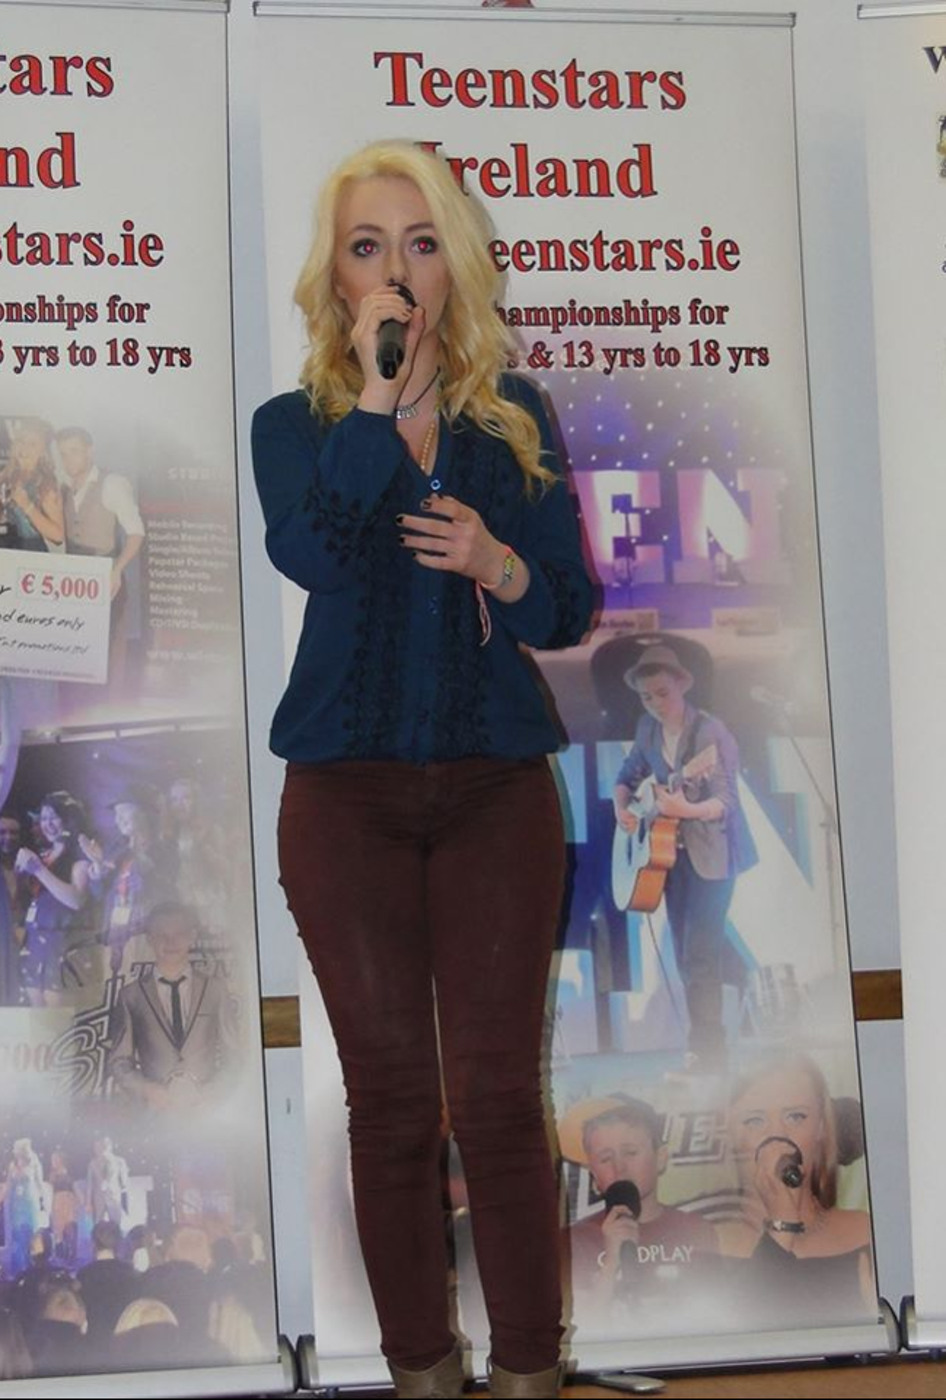 Alice Mc Grath, who is in the national final of Teenstars.